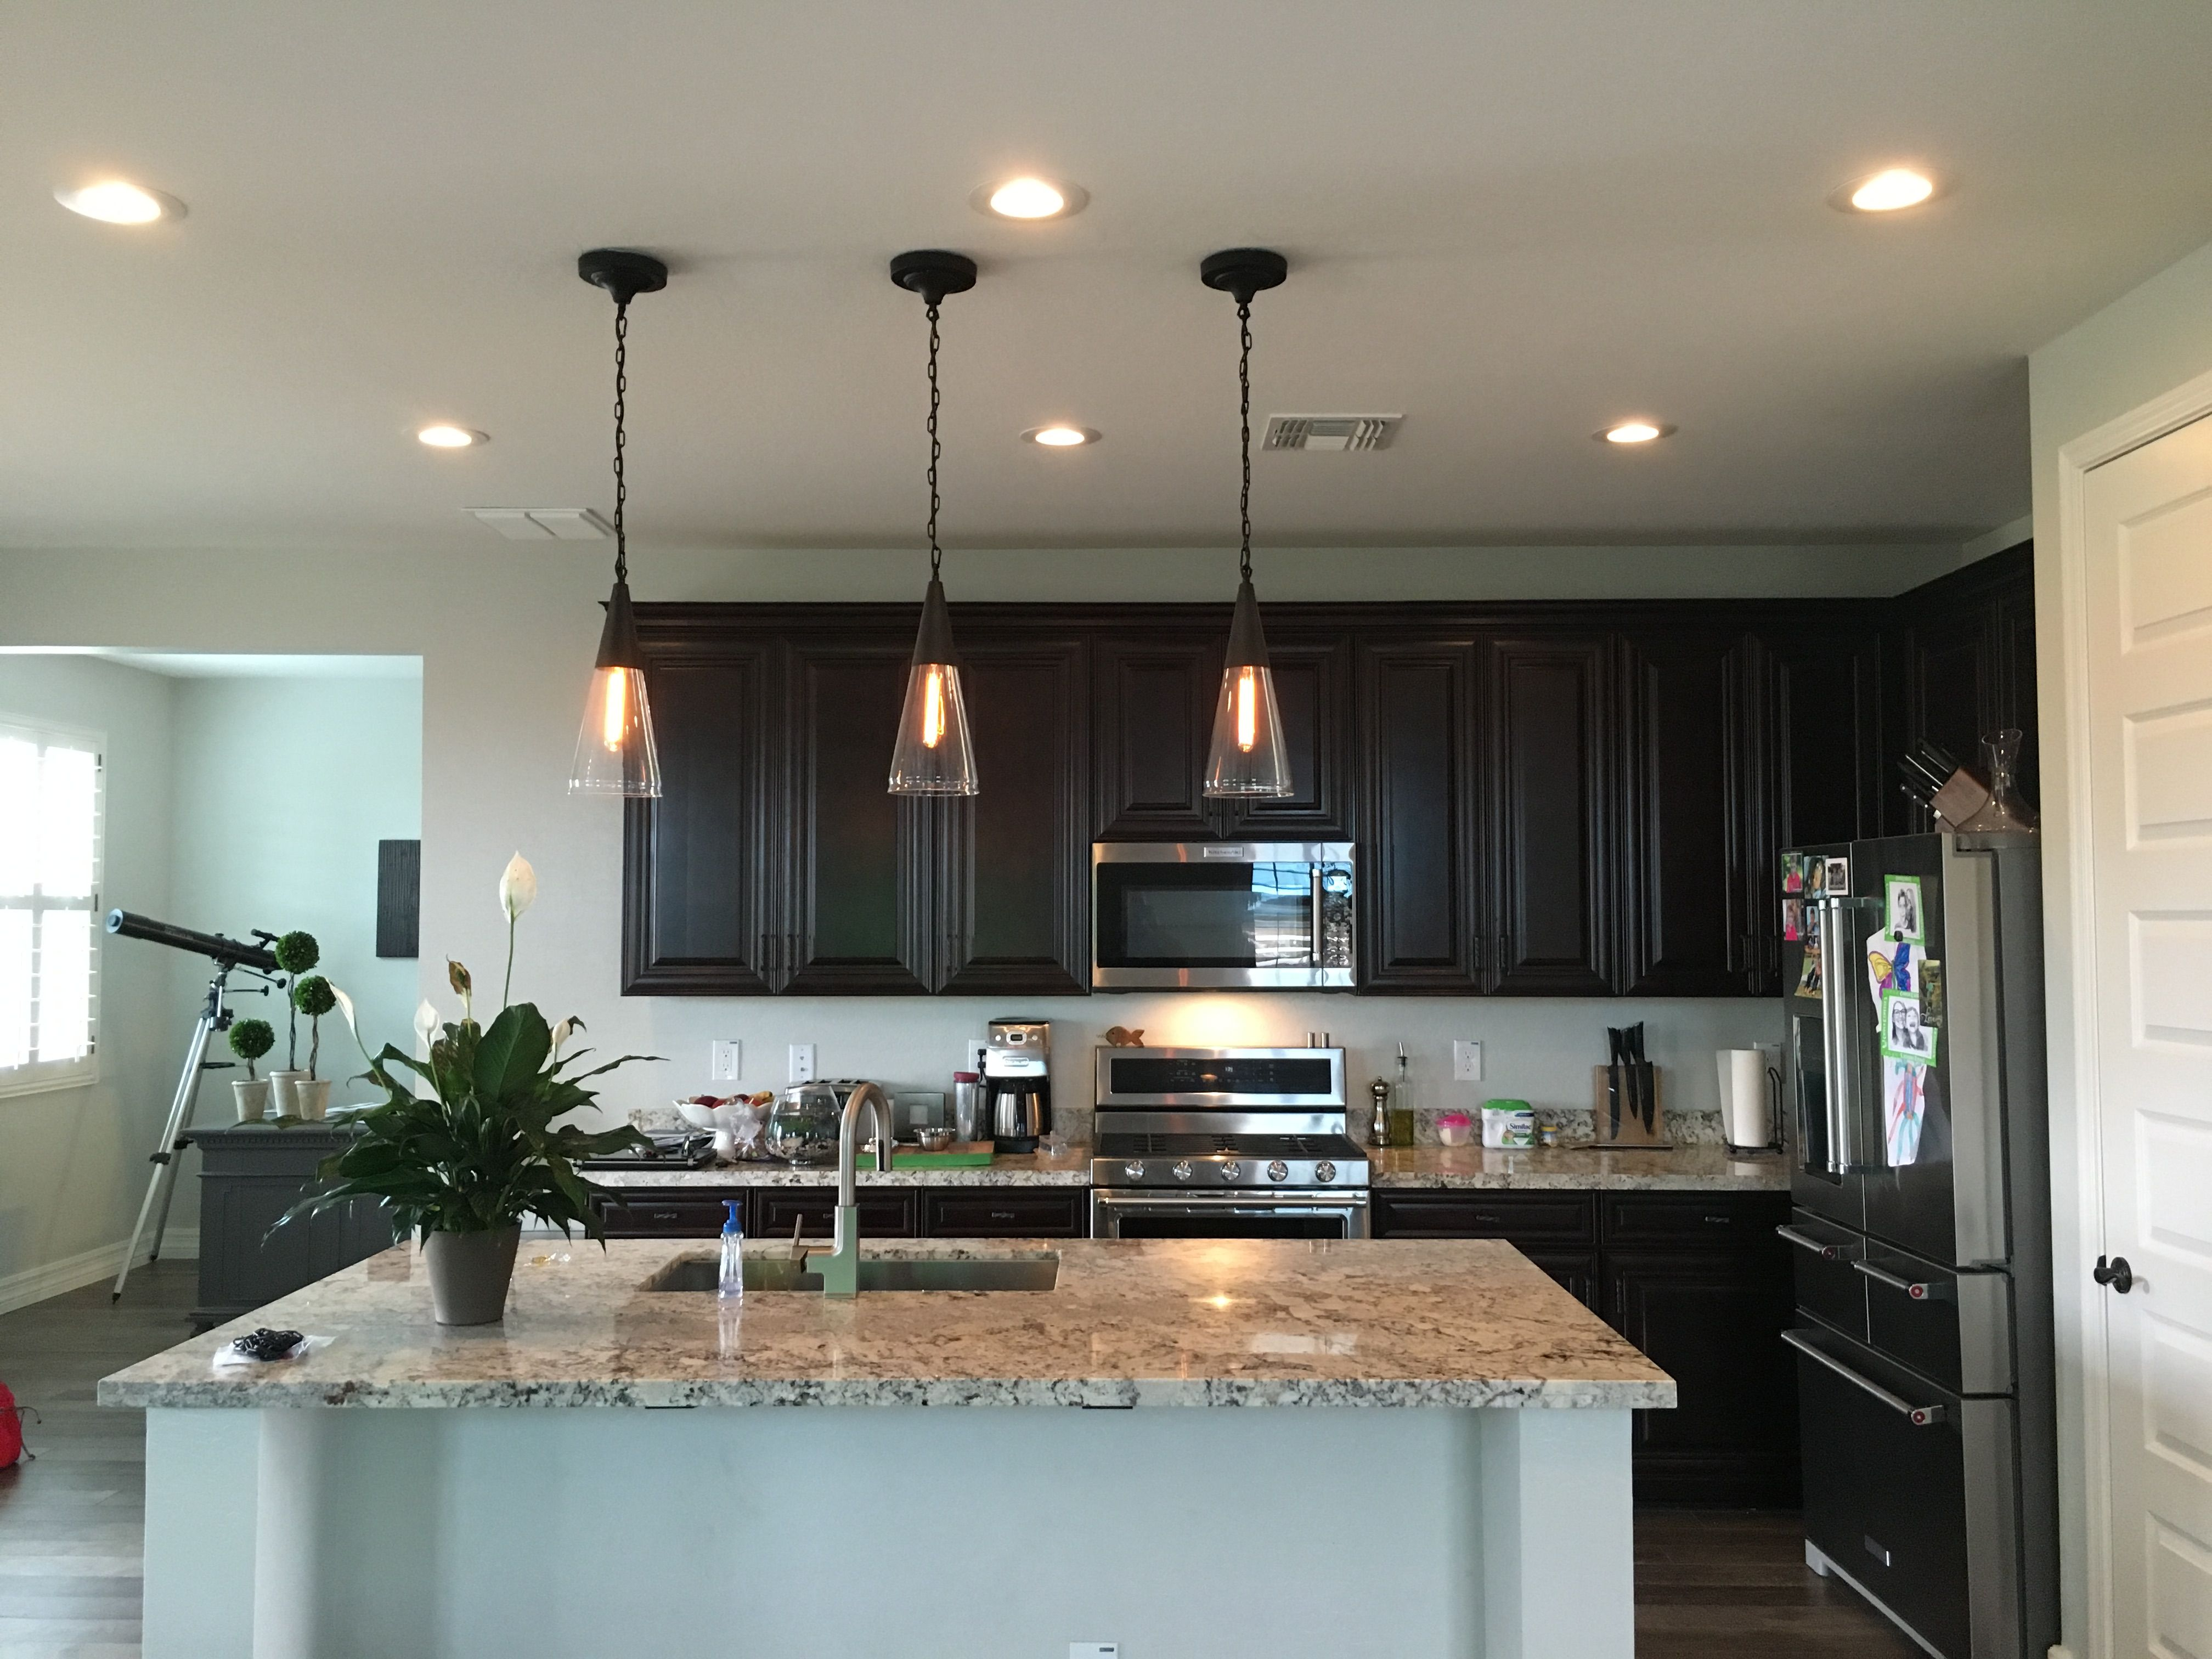 AZ Recessed Lighting installation of LED lights and island pendants ...